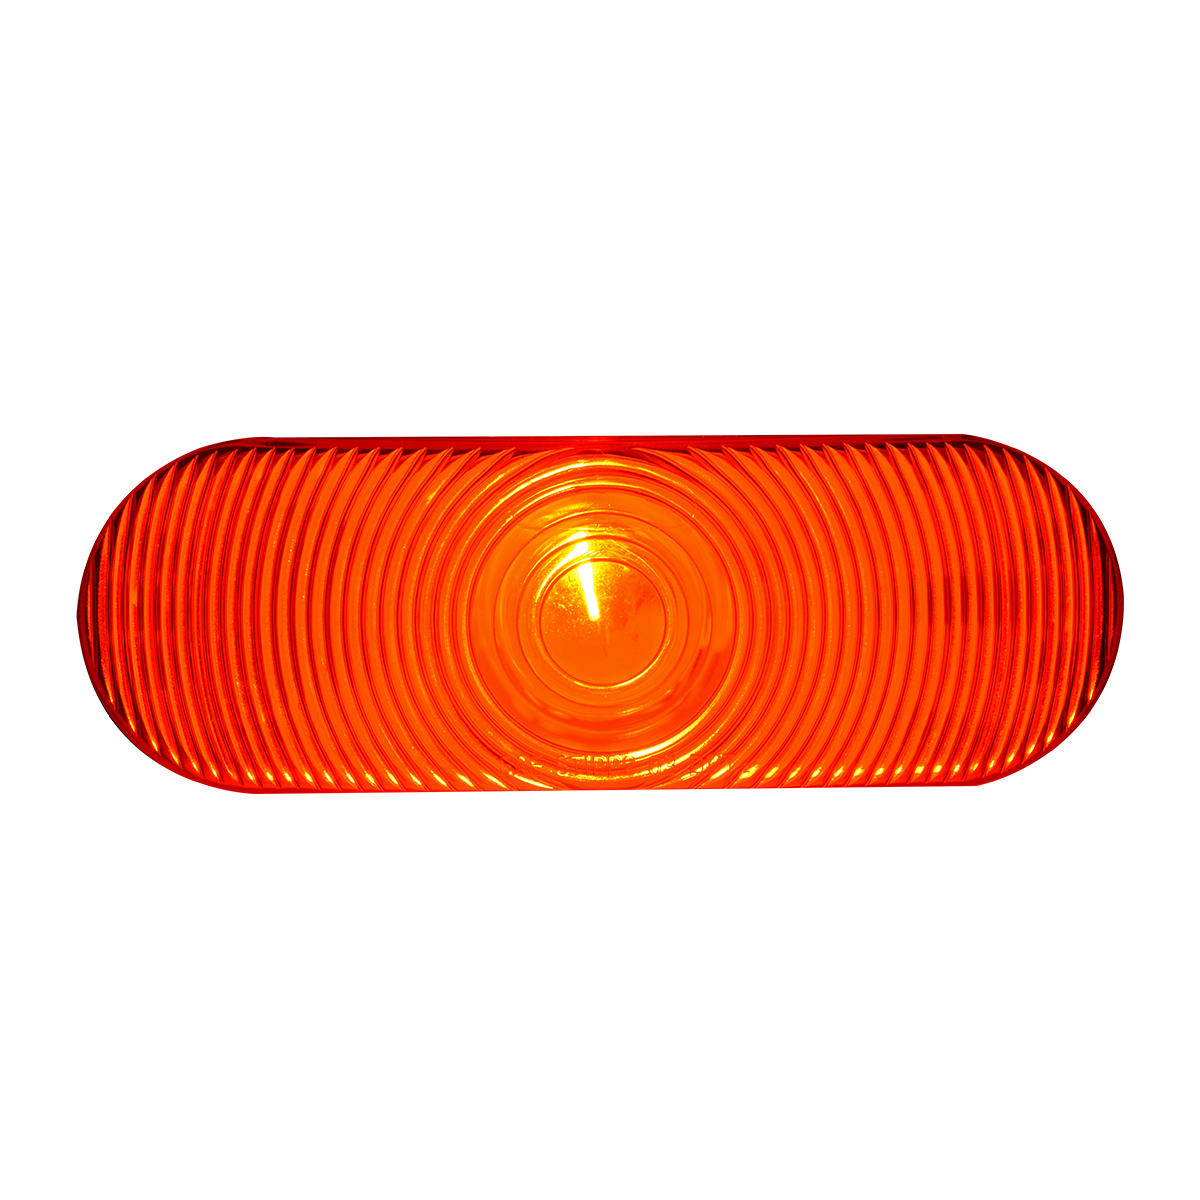 #80805 Oval Sealed Incandescent Flat Red/Red Light